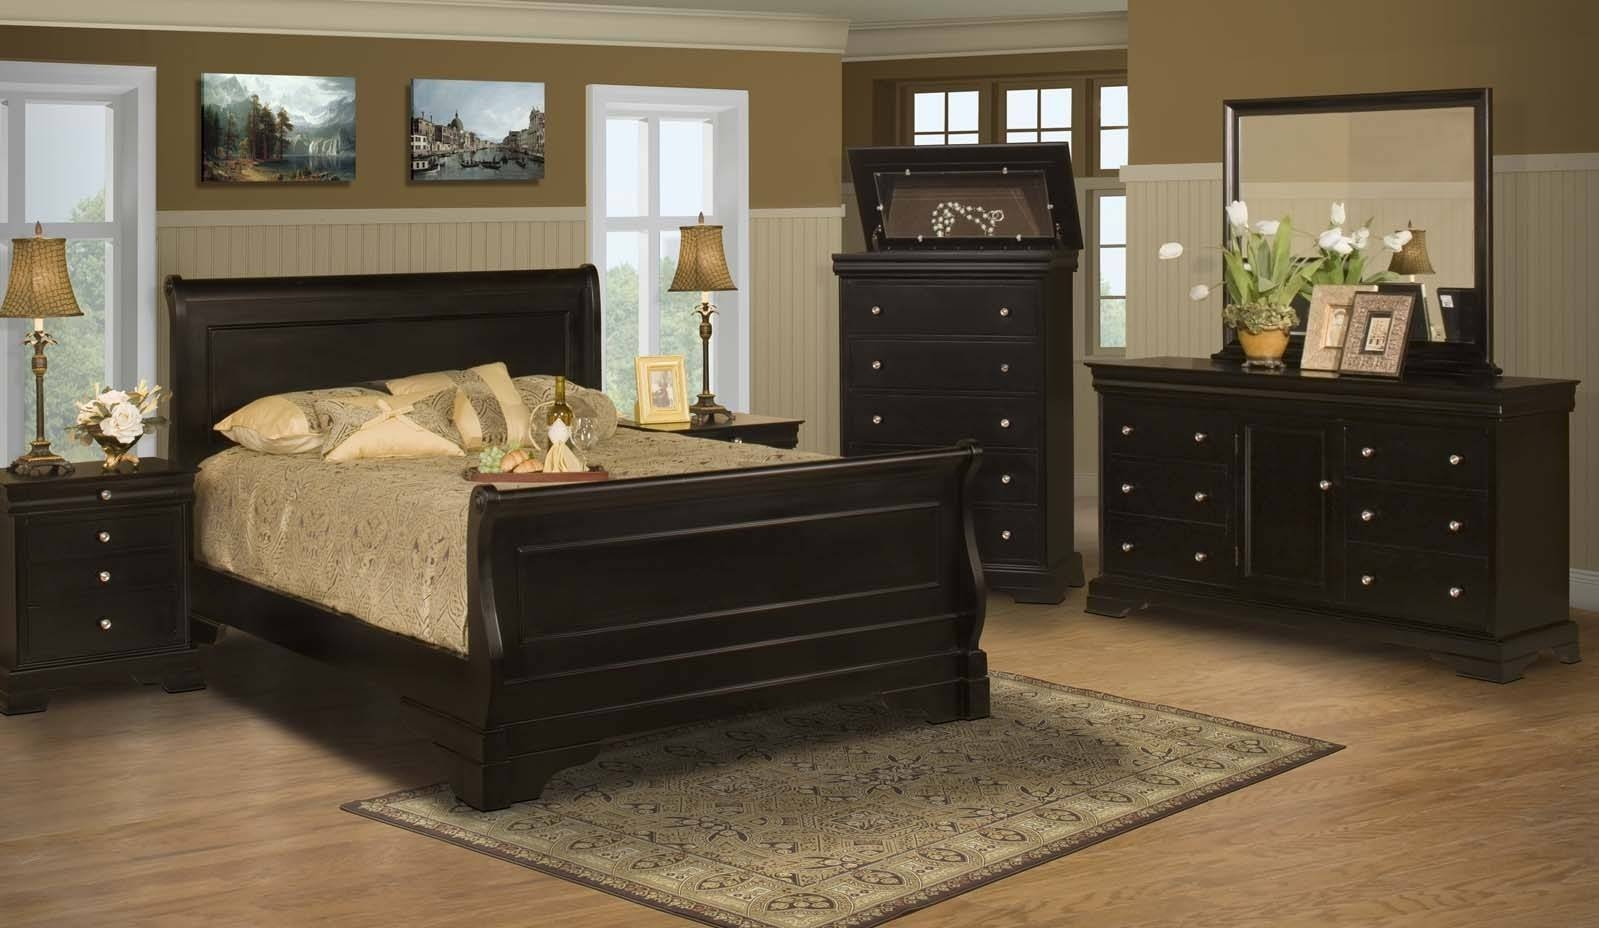 Stratford Black Cherry 5 Drawer Lift Top Chest For $389.94 with regard to Stratford Sofas (Image 22 of 30)